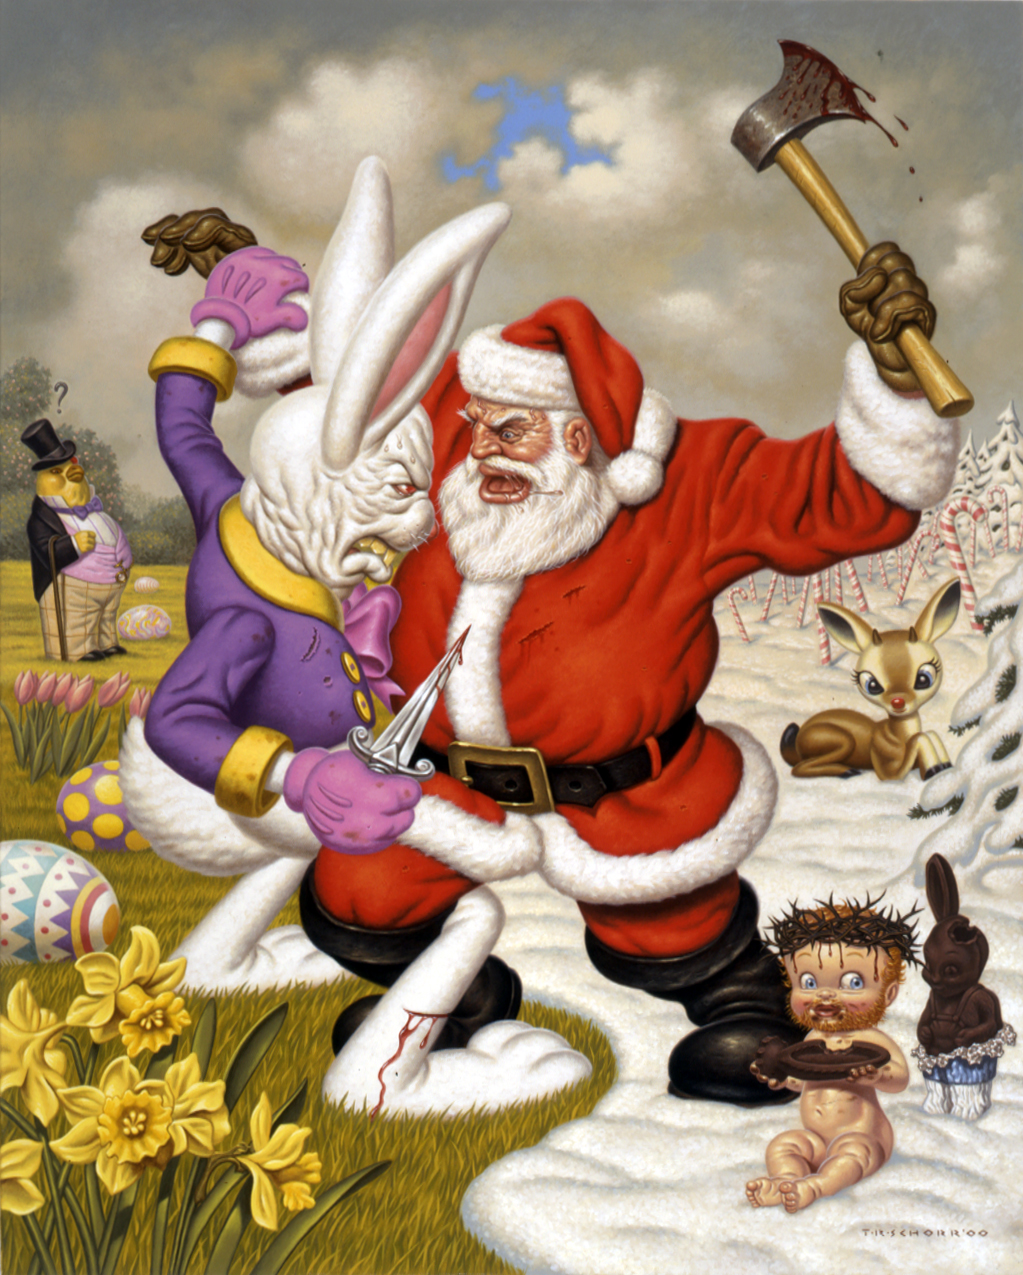 Todd Schorr, Clash of holidays